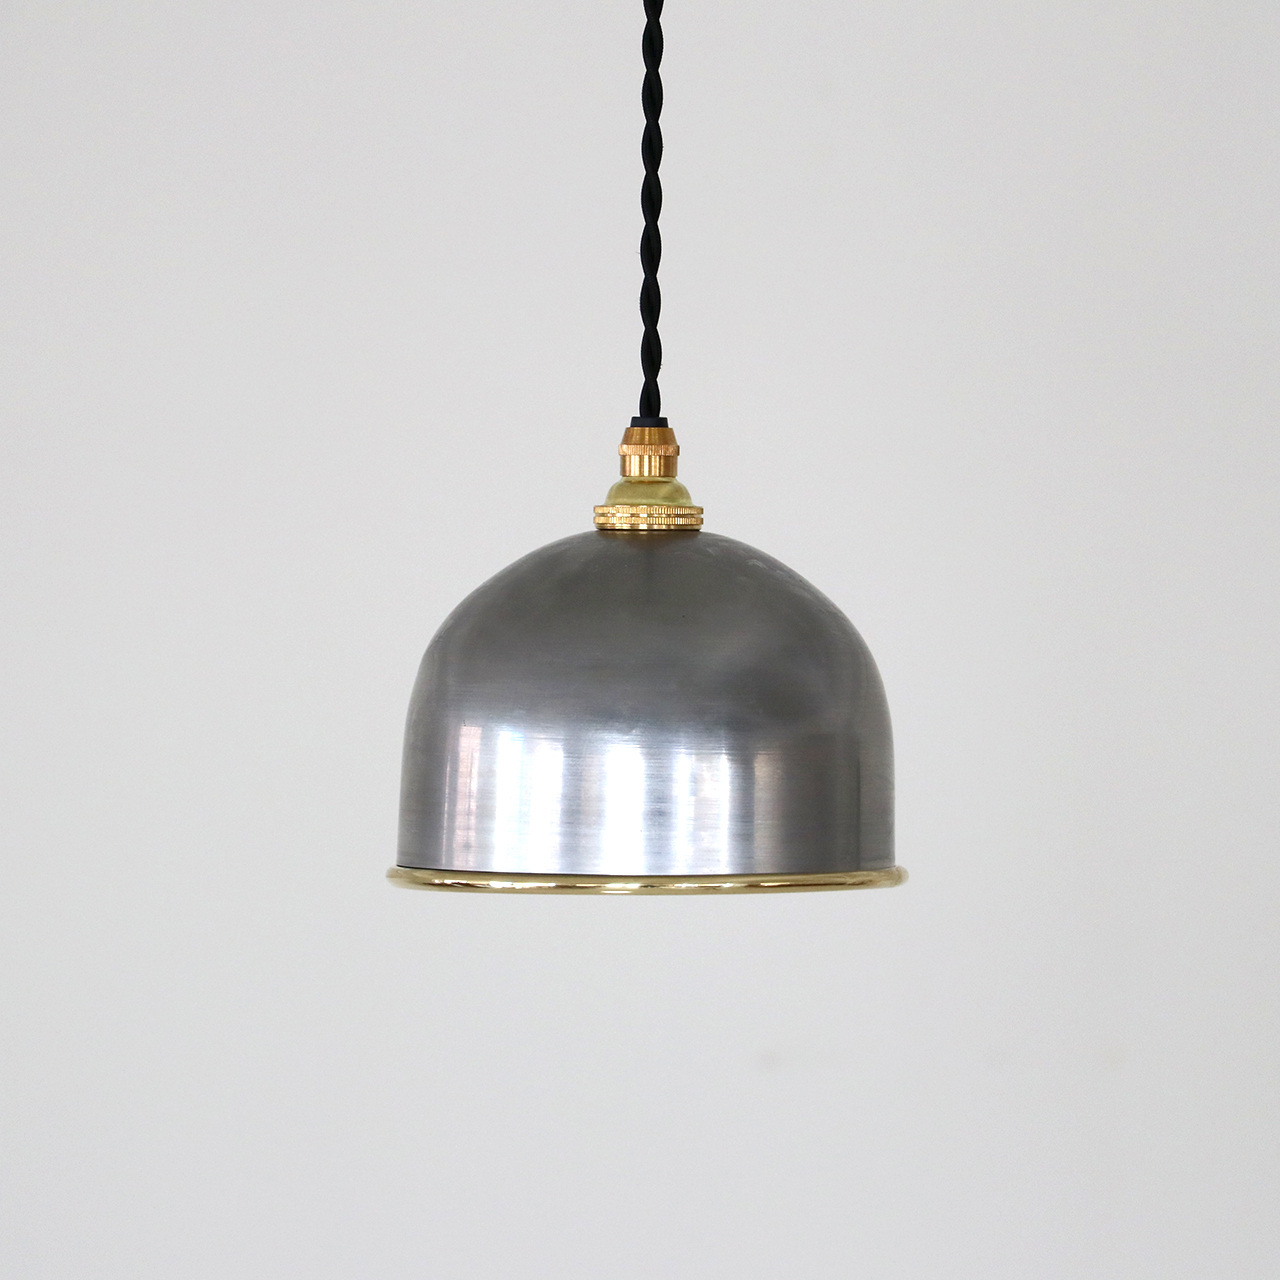 Iron-Brass C pendant lamp